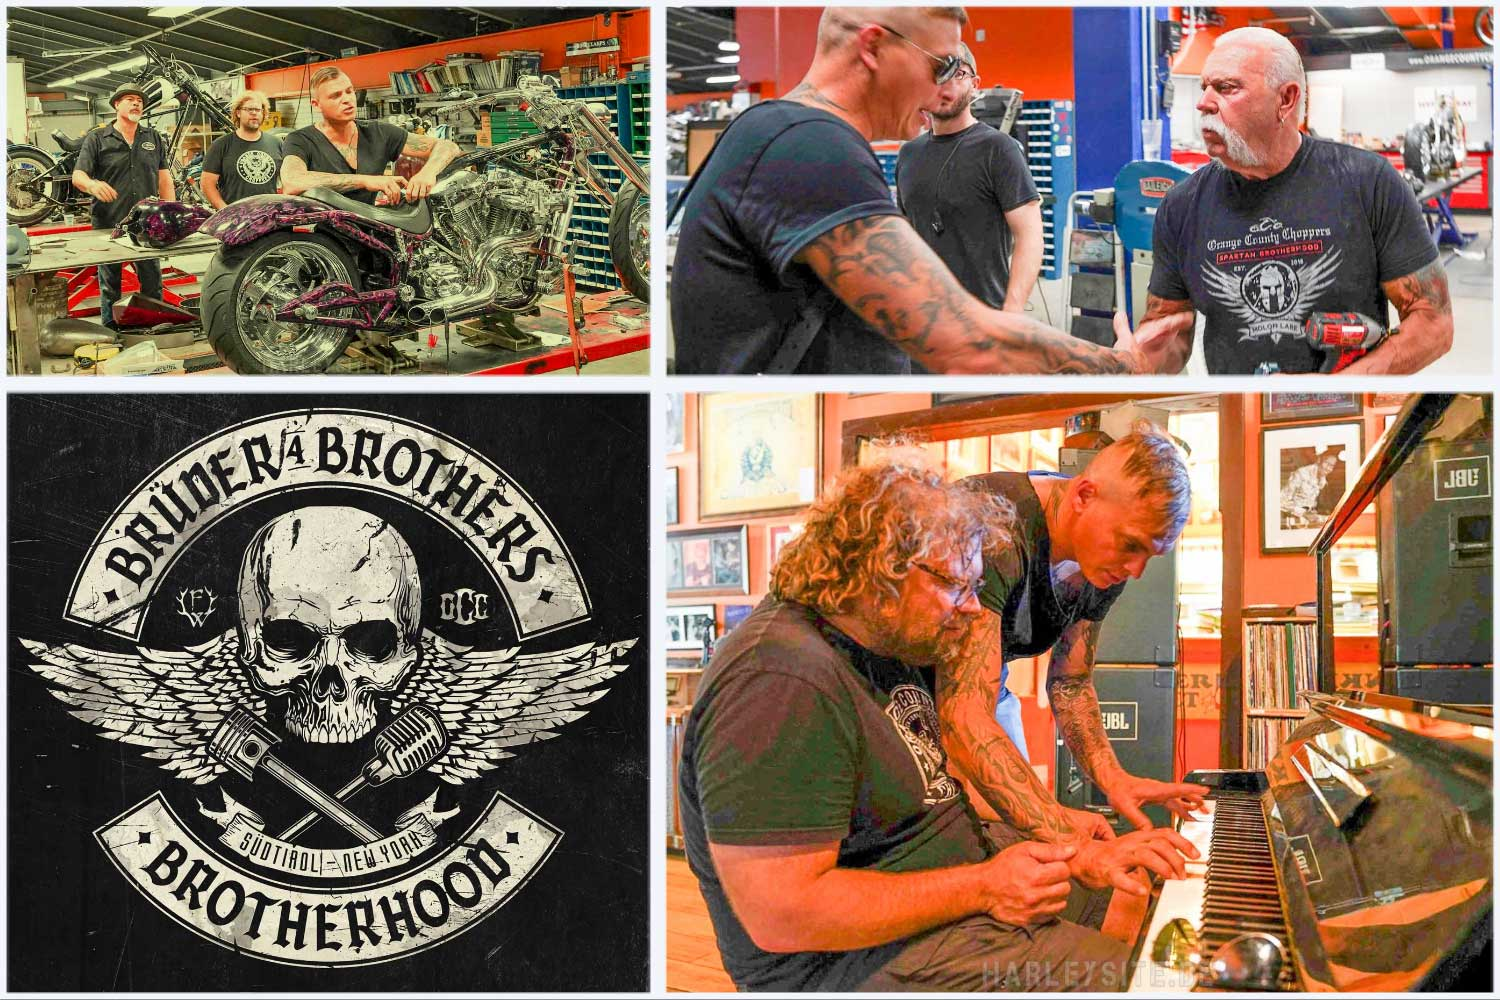 Brüder4Brothers – Orange County Choppers – am 7. August erscheint ihr Album!